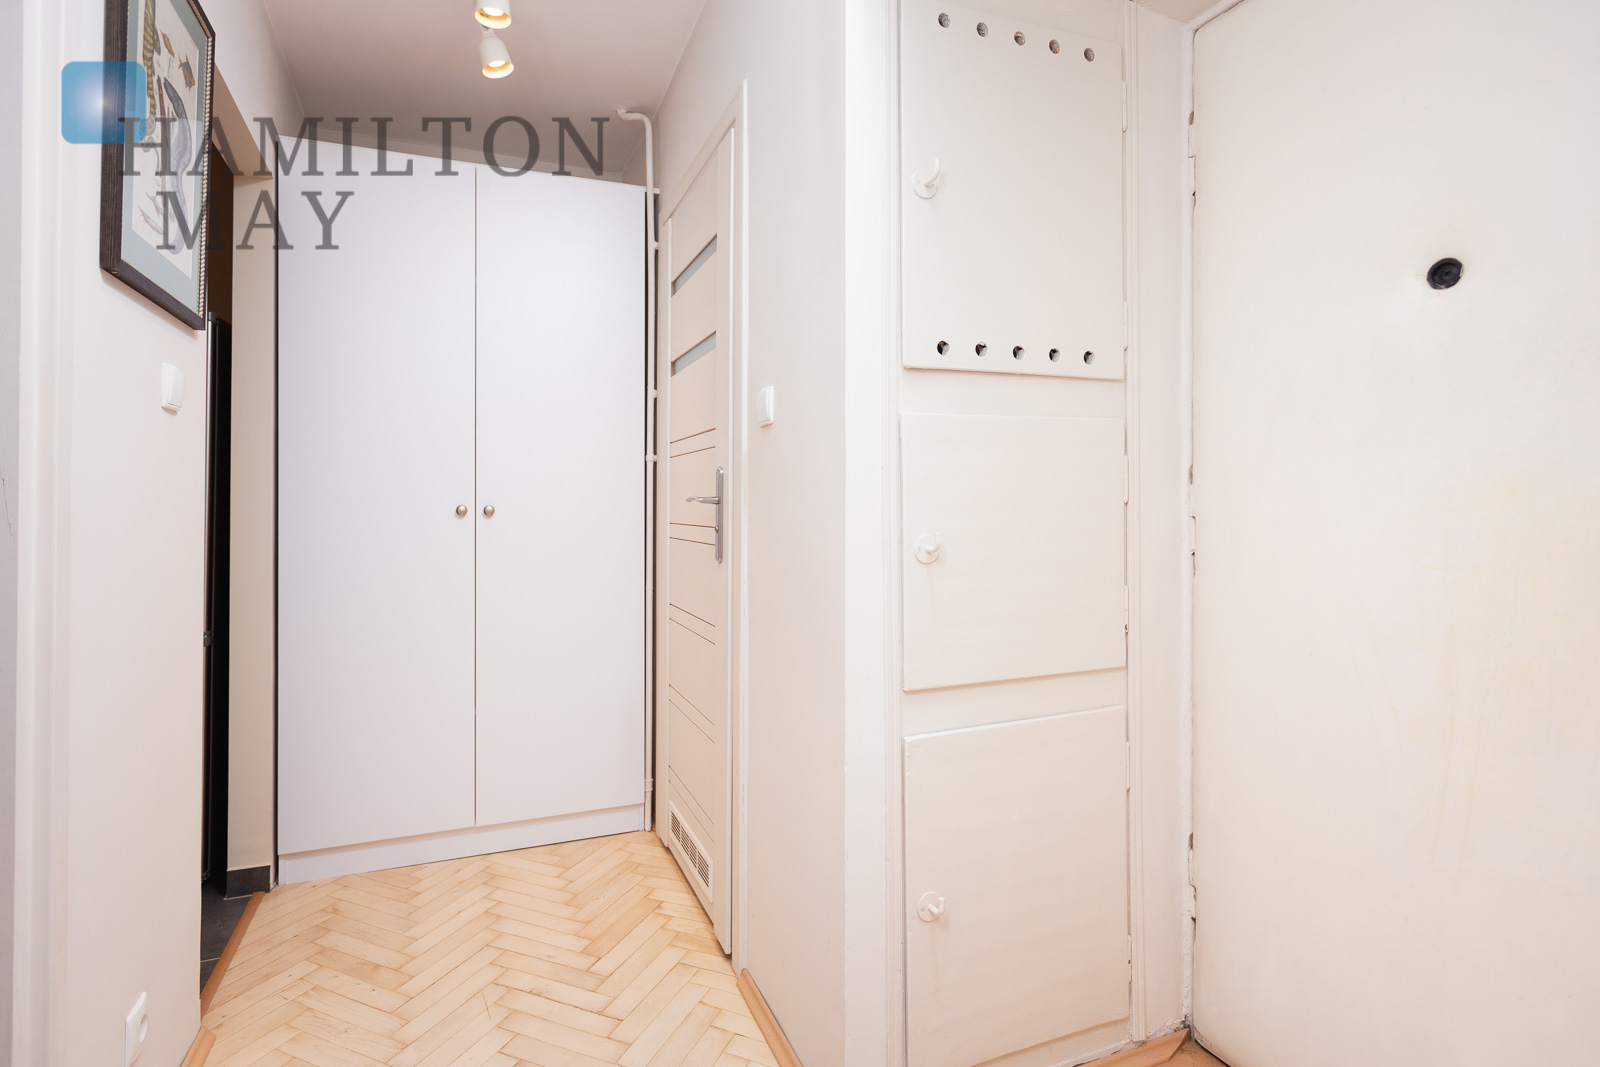 Comfortable one-bedroom apartment located in the Old Town Krakow for rent